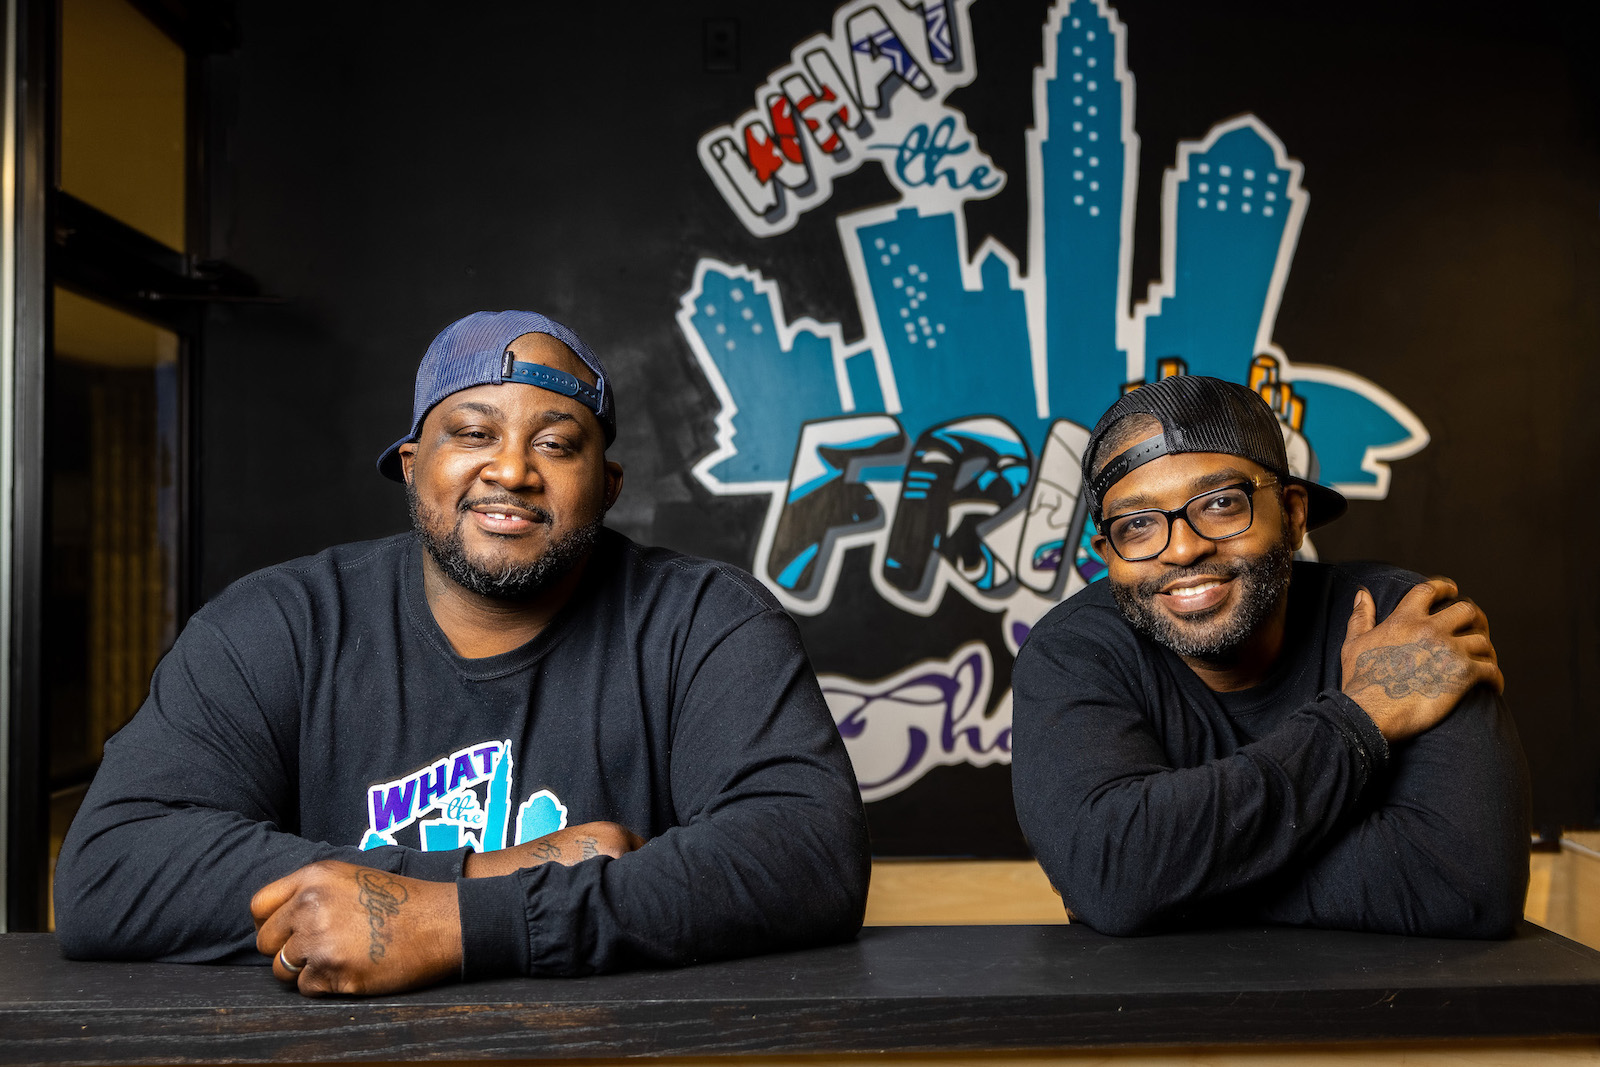 During the pandemic, Jamie Barnes and Greg Williams of the What the Fries food truck opened their first brick-and-mortar restaurant in a former CiCi's Pizza